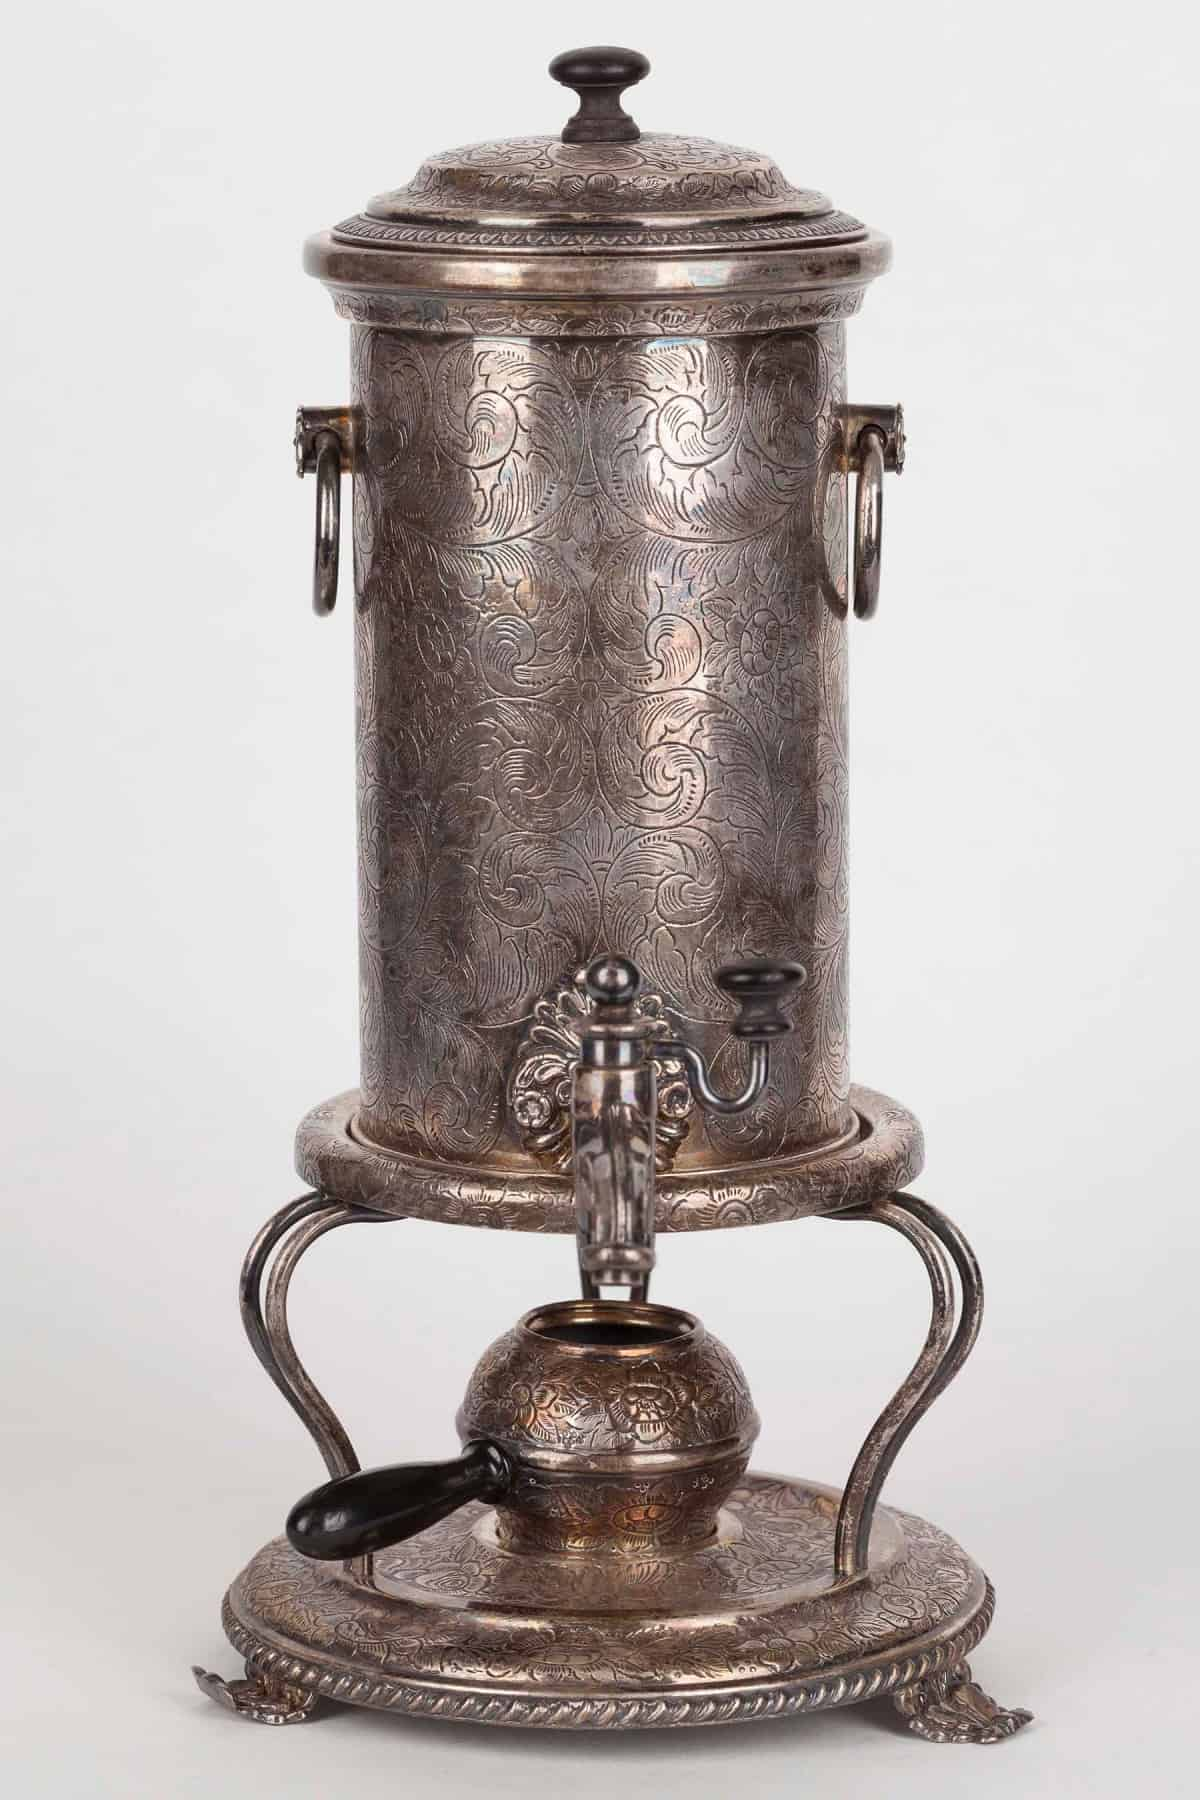 KB 587 Bouillotte-coffeepot with floral ornaments